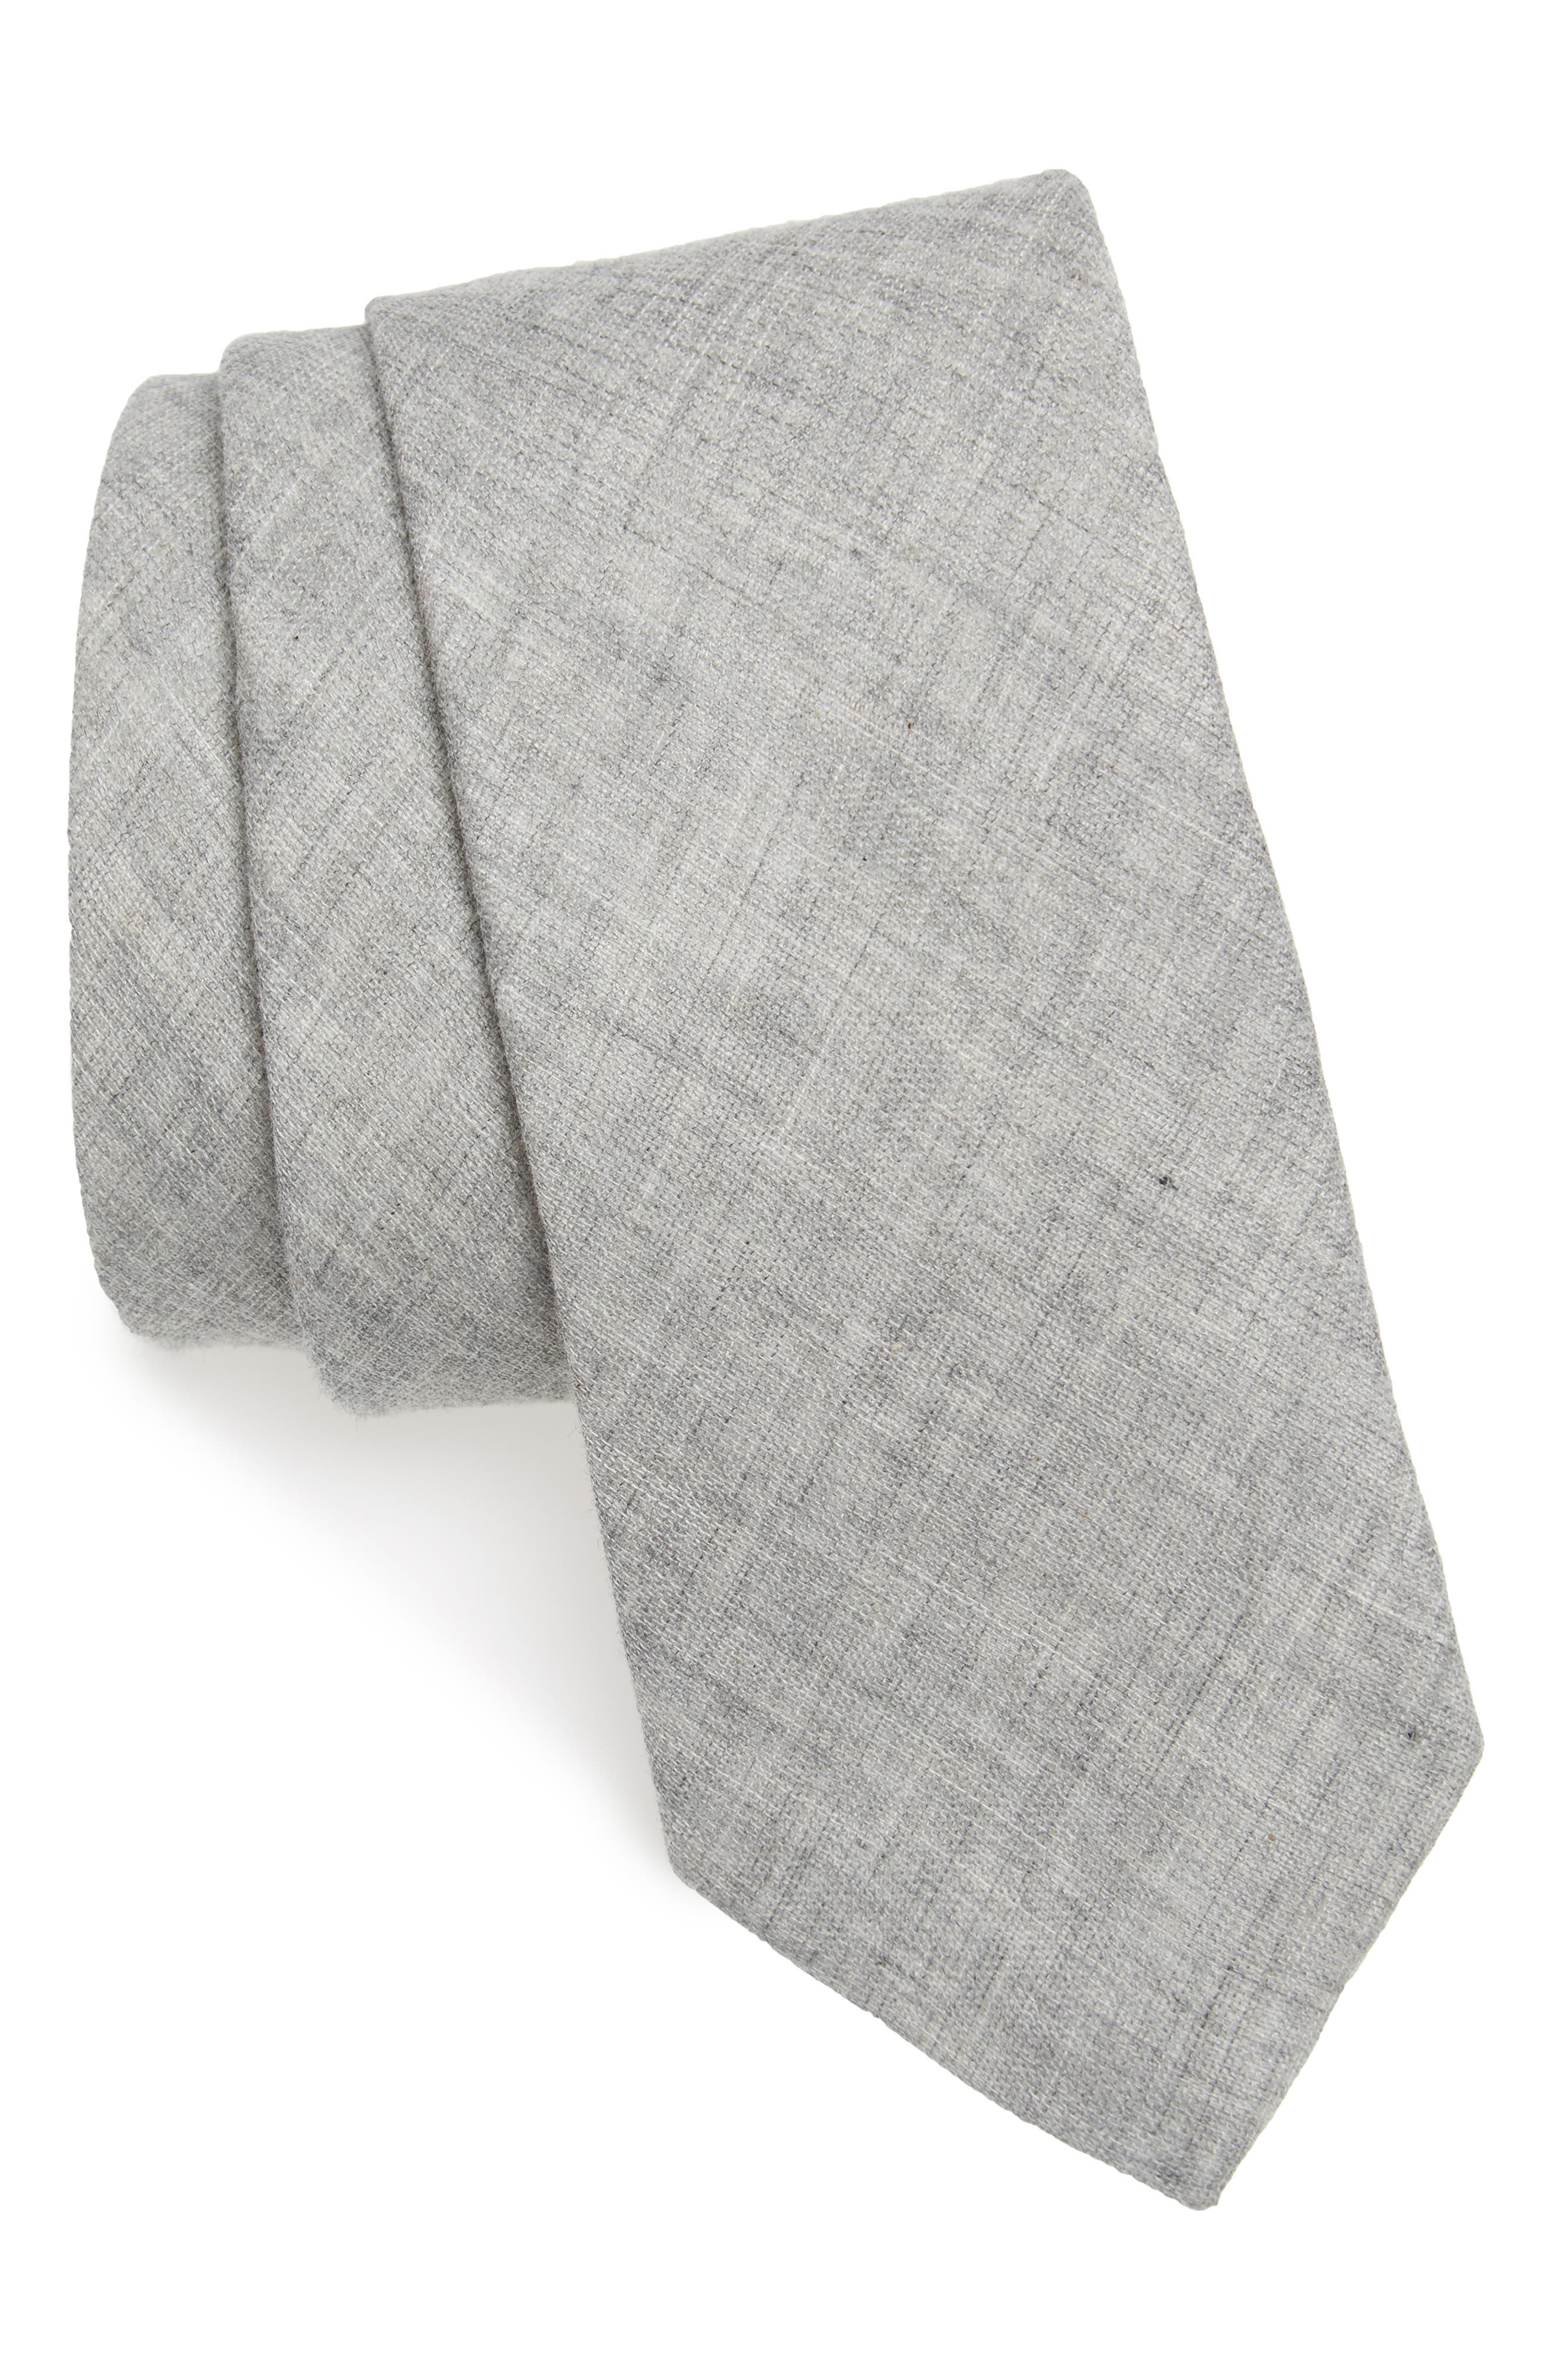 Bedell Solid Cotton Tie,                             Main thumbnail 2, color,